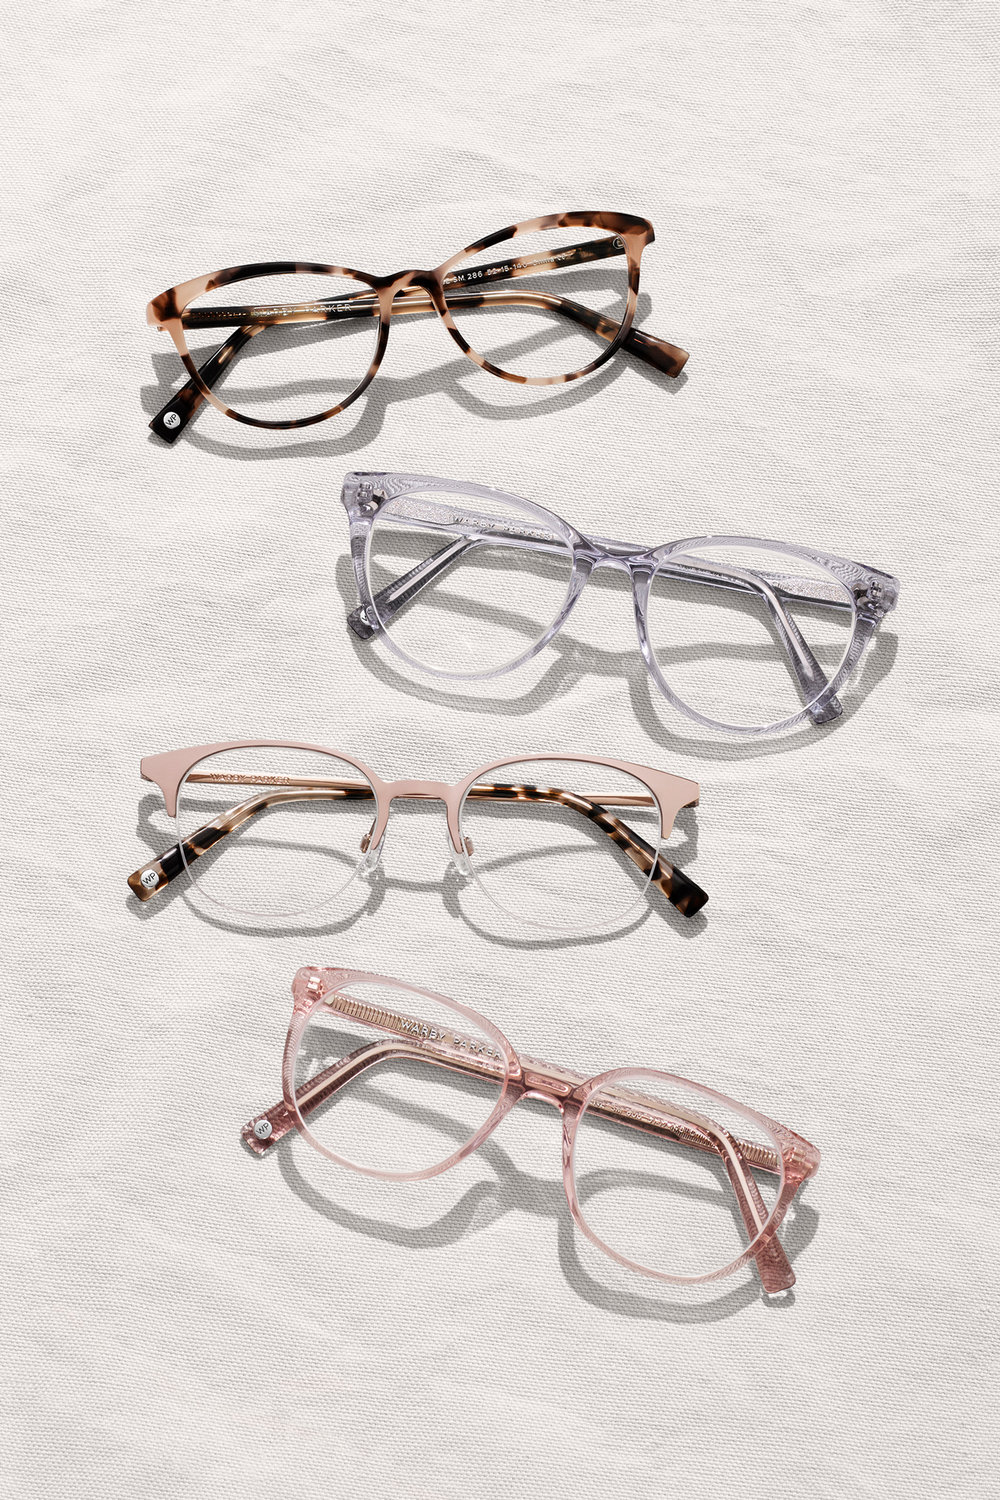 e4af0e4988b5 Warby Parker Announces it s New Winter 2017 Collection — Inspiredbykrys